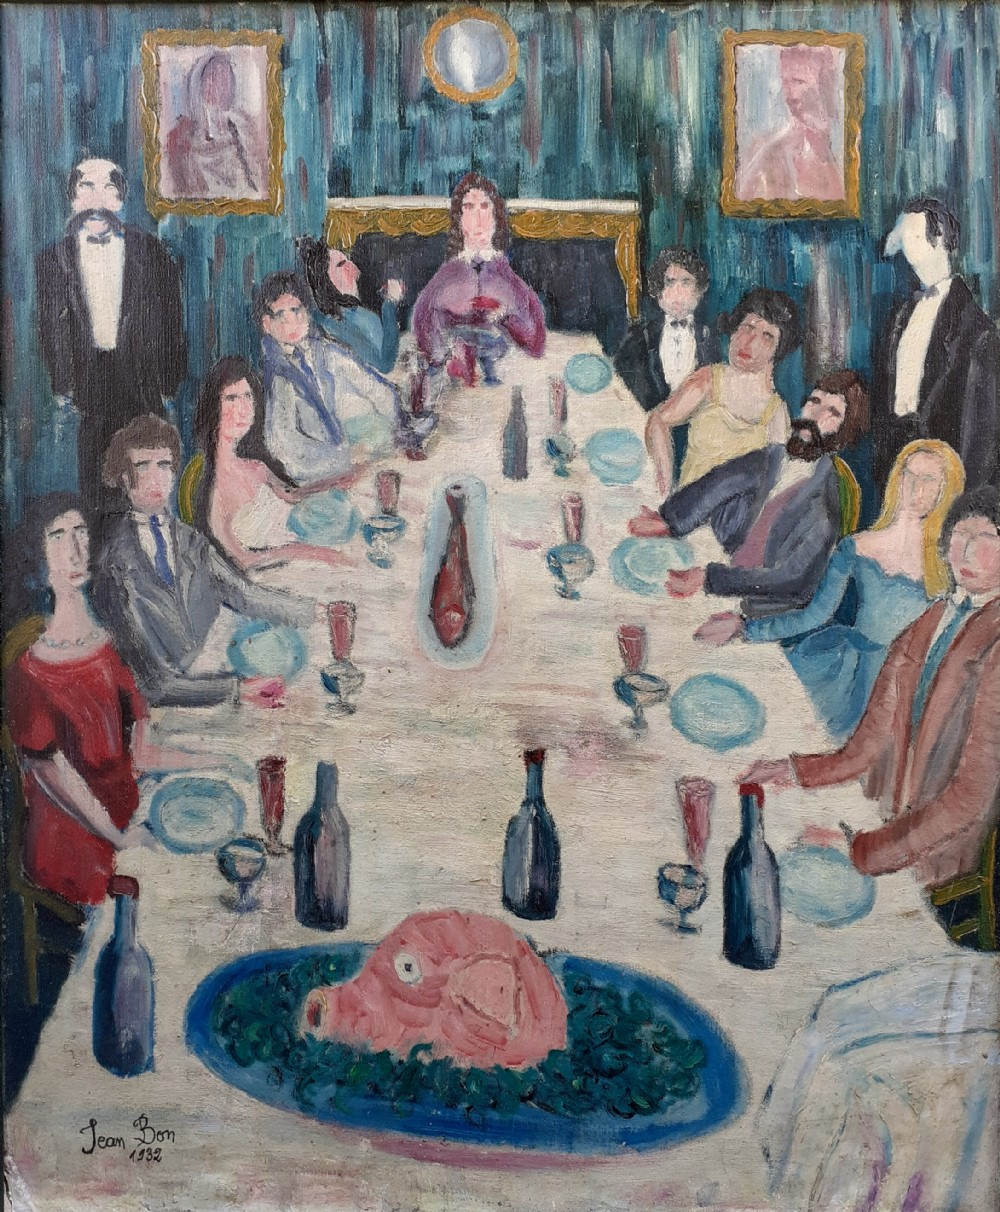 jambon the dinner party 1930s folk outsider art antique french oil on canvas a painting for a chef